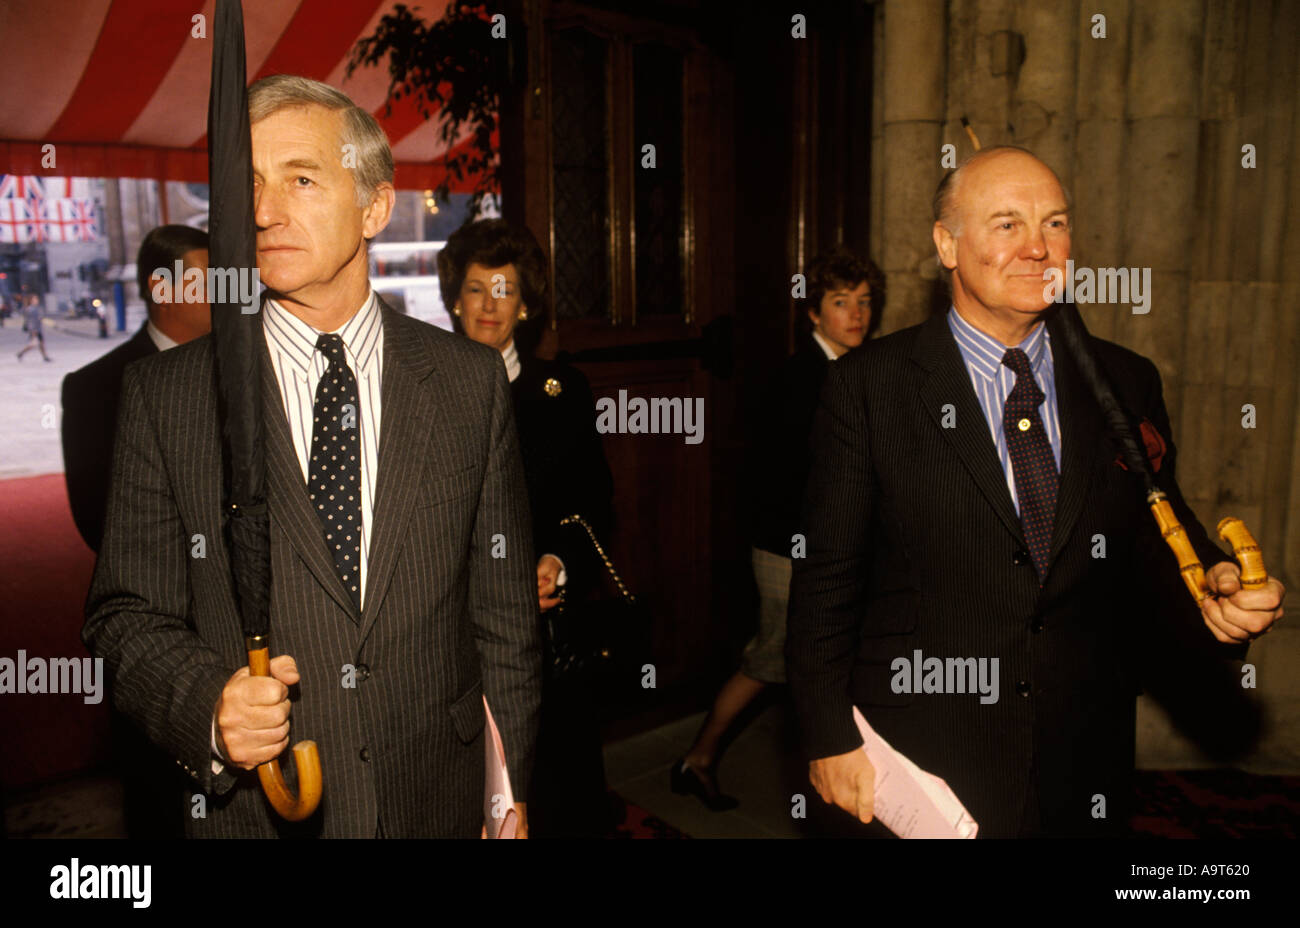 Mace bearers use umbrellas substitute rehearsal Lord Mayor of London banquet in the GuildHall England HOMER SYKES - Stock Image